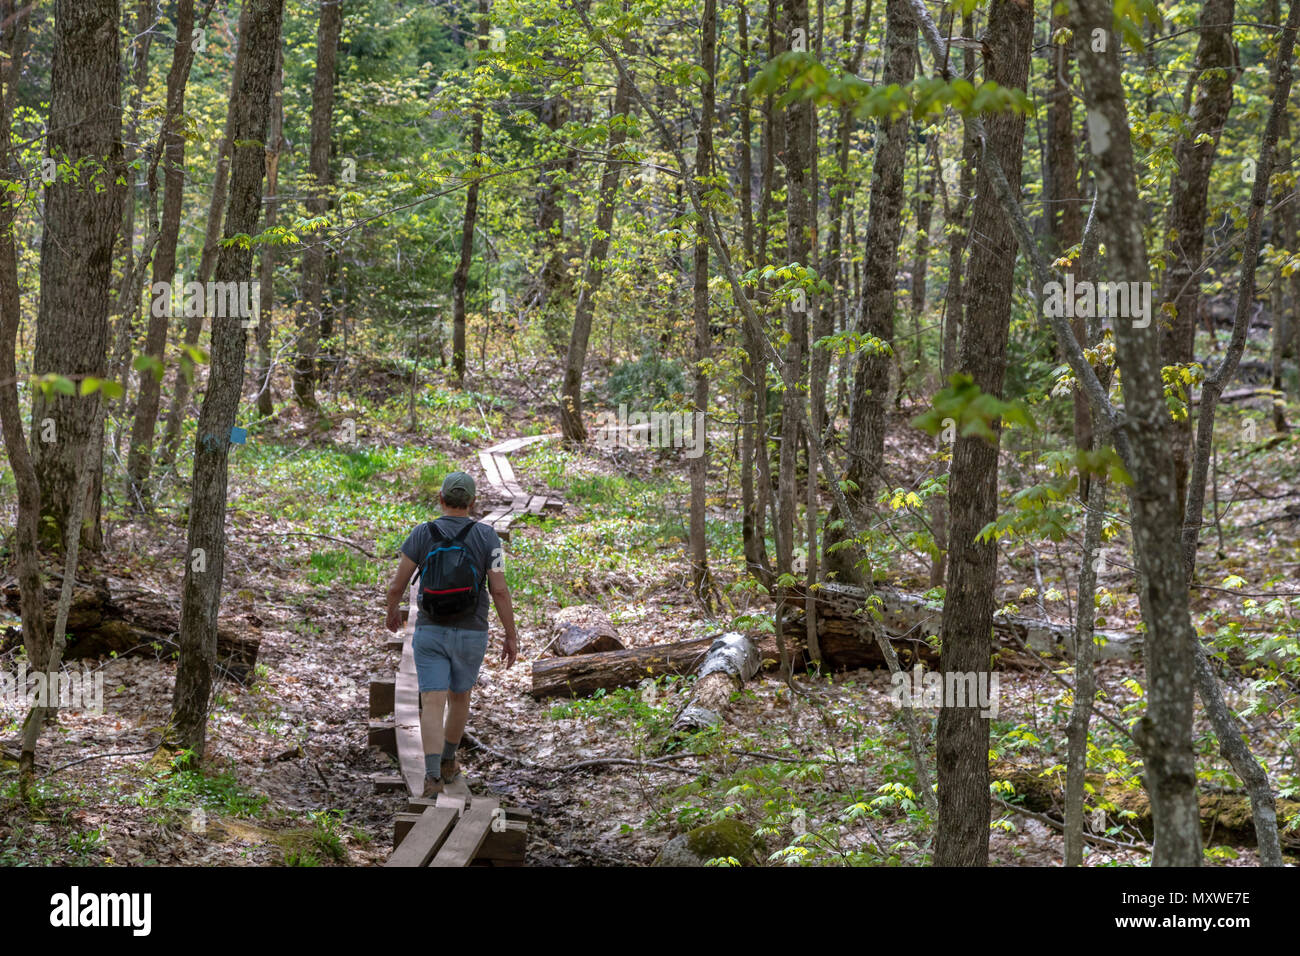 Ontonagon, Michigan - A hiker on boardwalk on a wet section of the Little Carp River Trail in Porcupine Mountains Wilderness State Park. Stock Photo